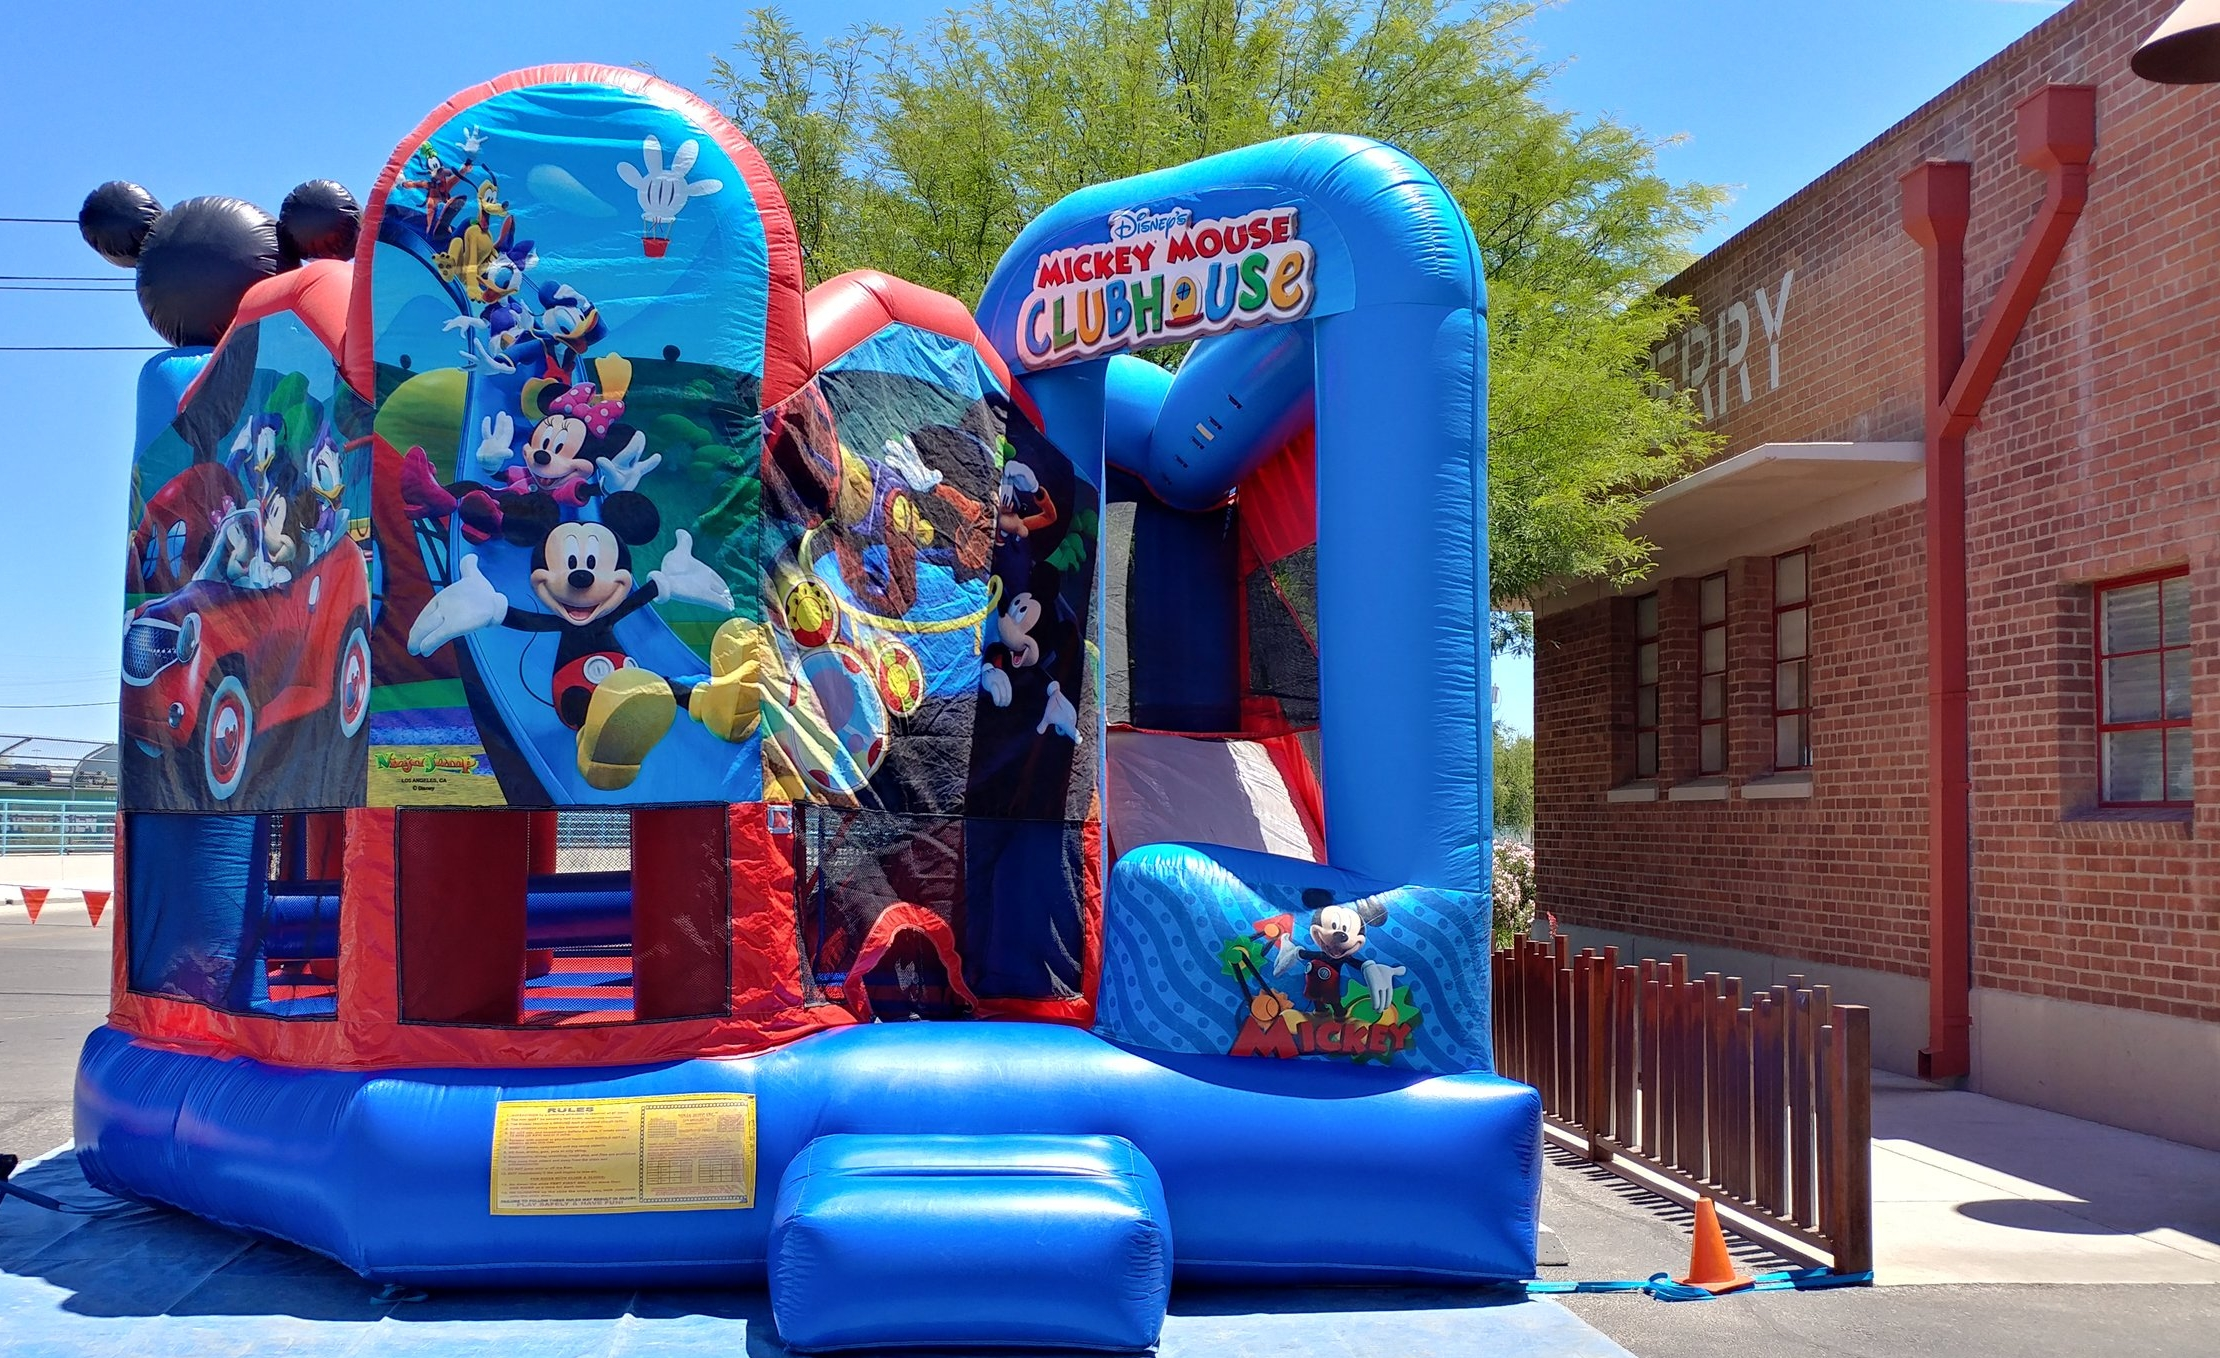 Jumping Castle at Rail Yard (15).jpg